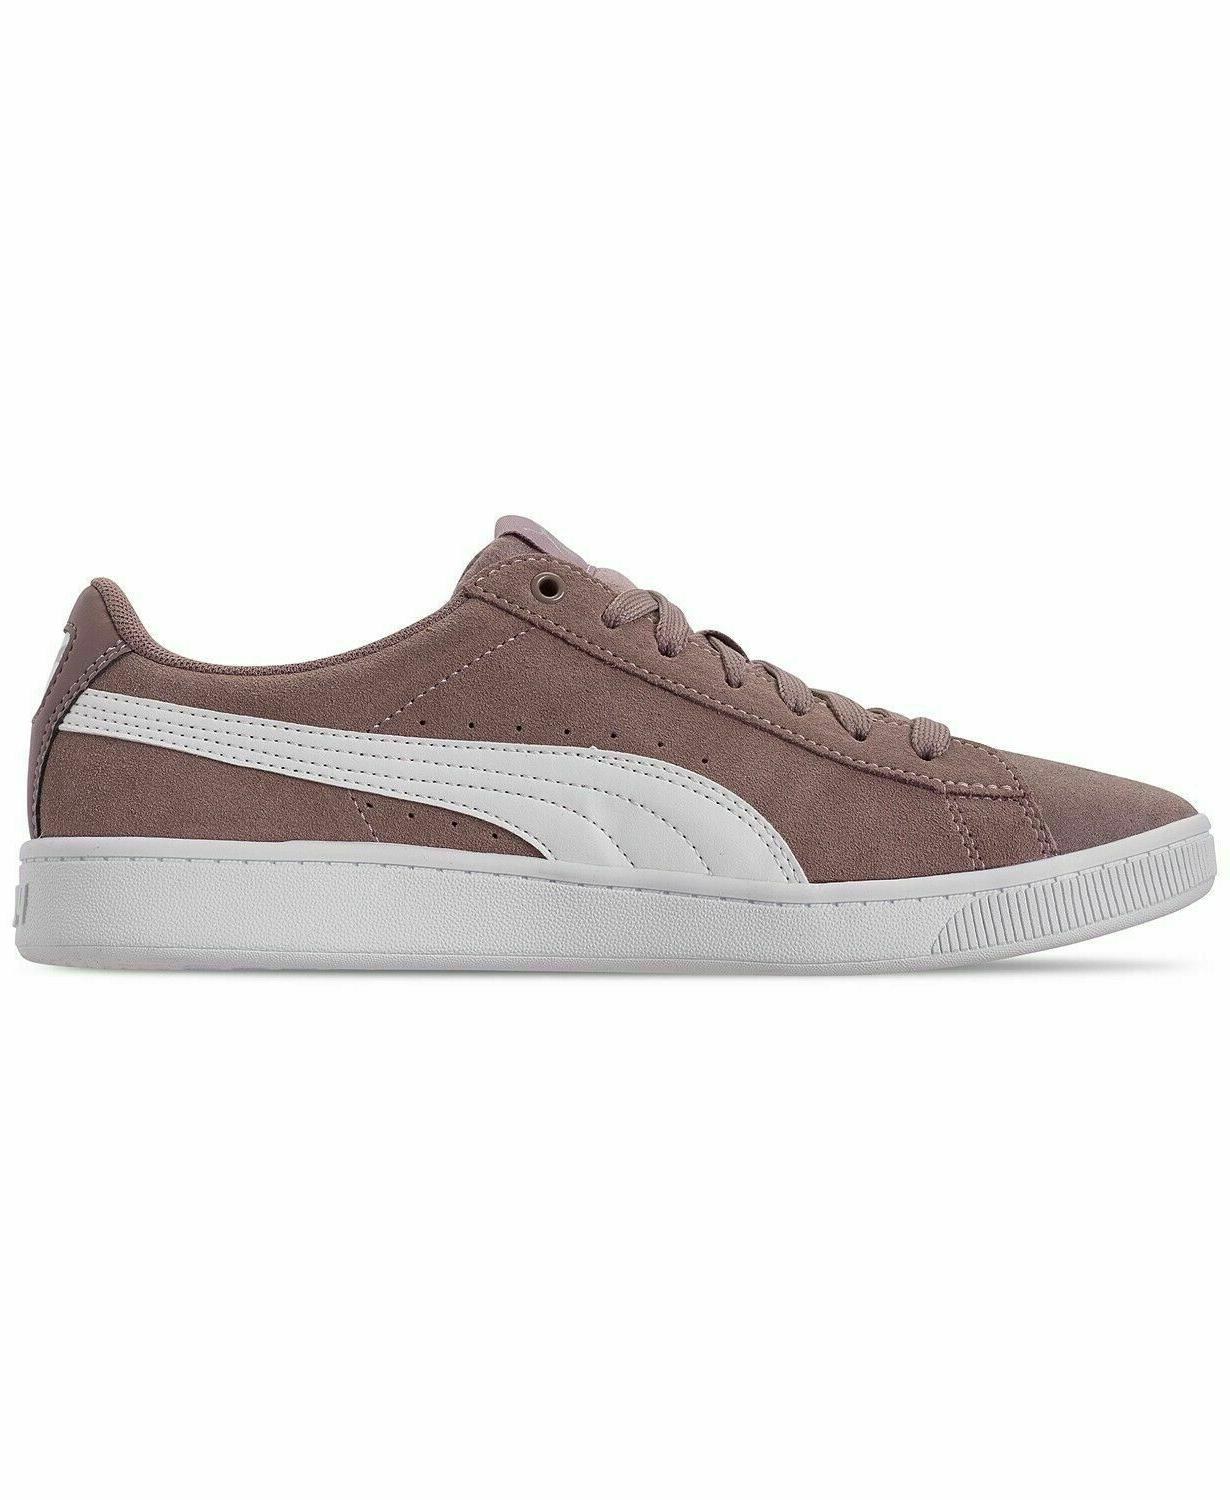 Puma Women's Classic Low-Top Sneaker Shoes - NEW IN BOX